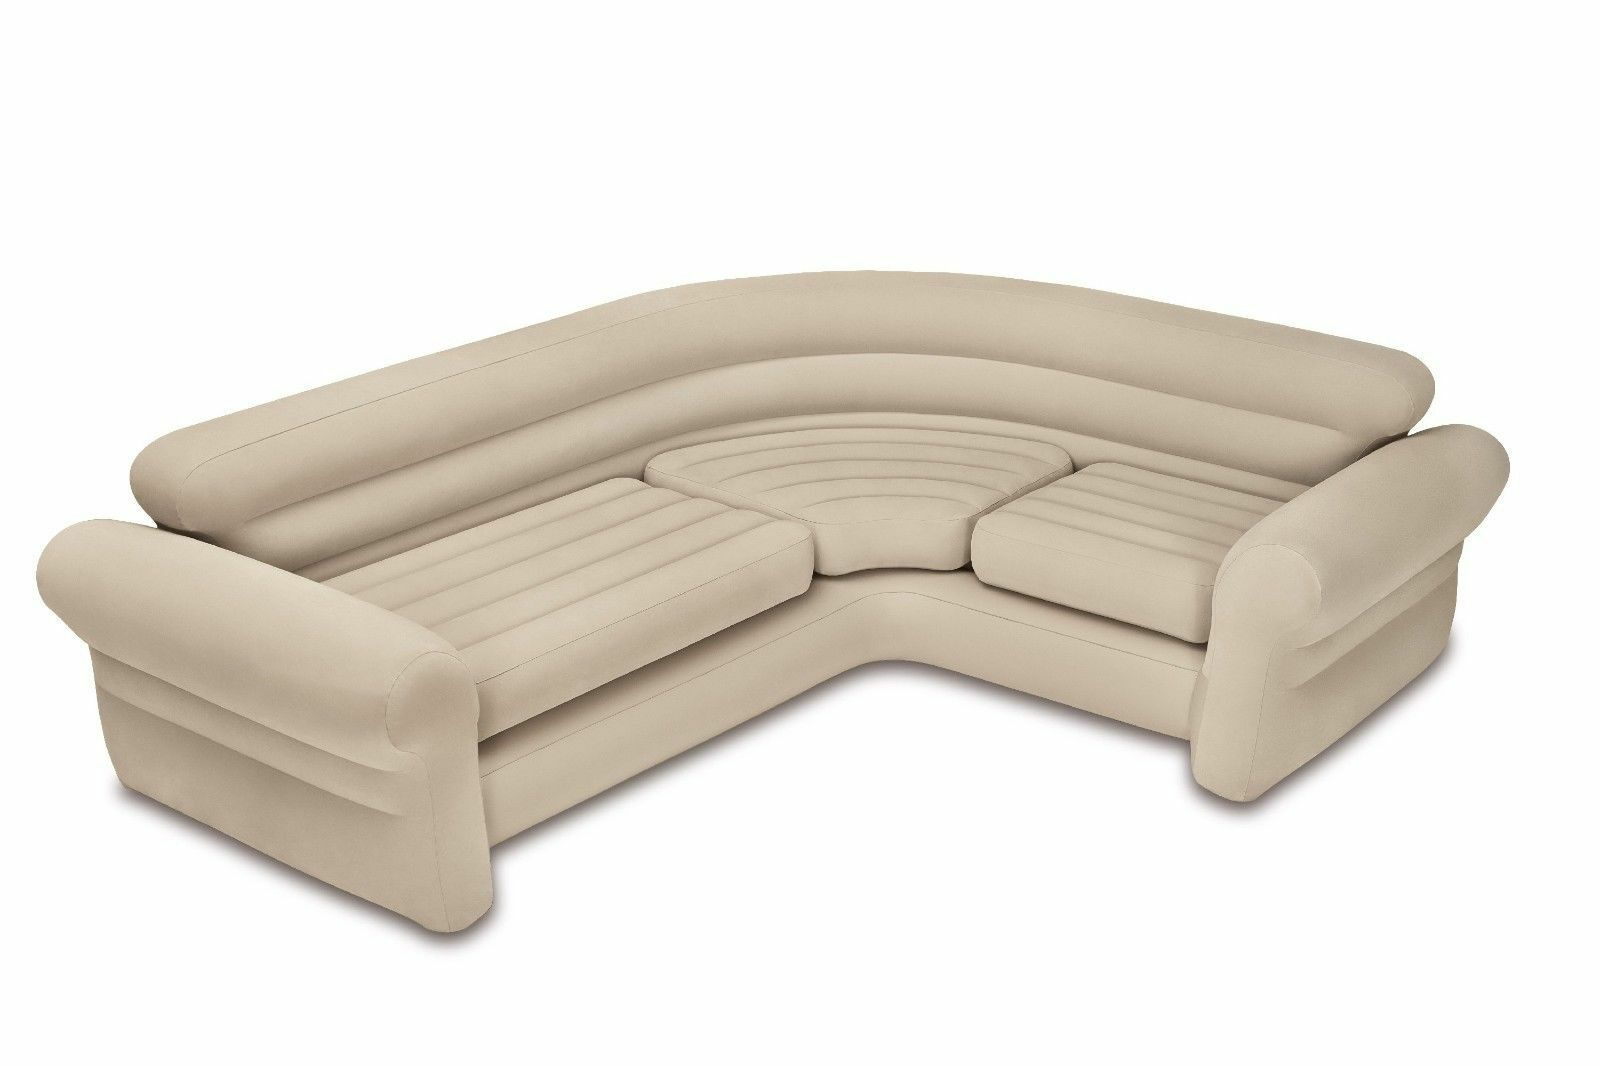 Intex Inflatable Pull Out Sofa India Functionalities Net